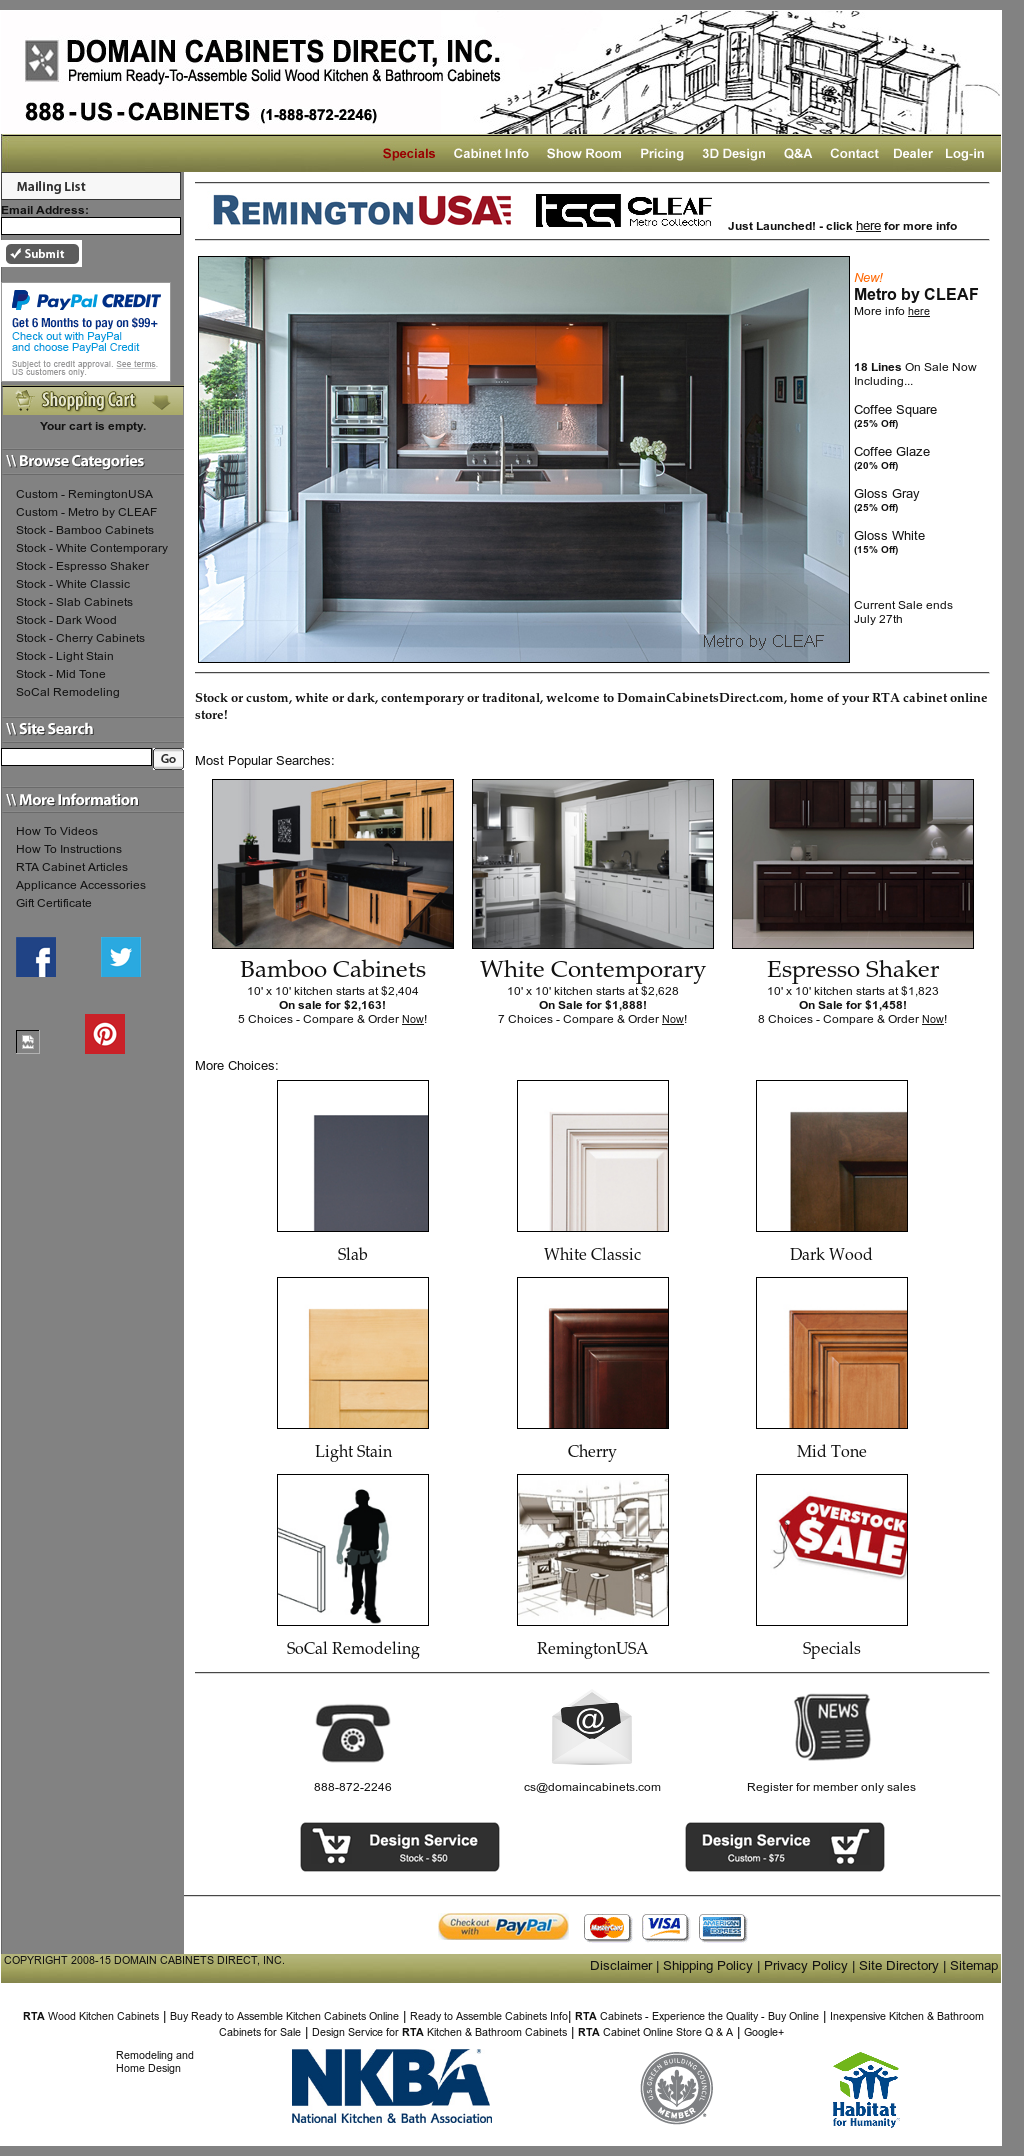 DOMAIN CABINETS DIRECT Website History